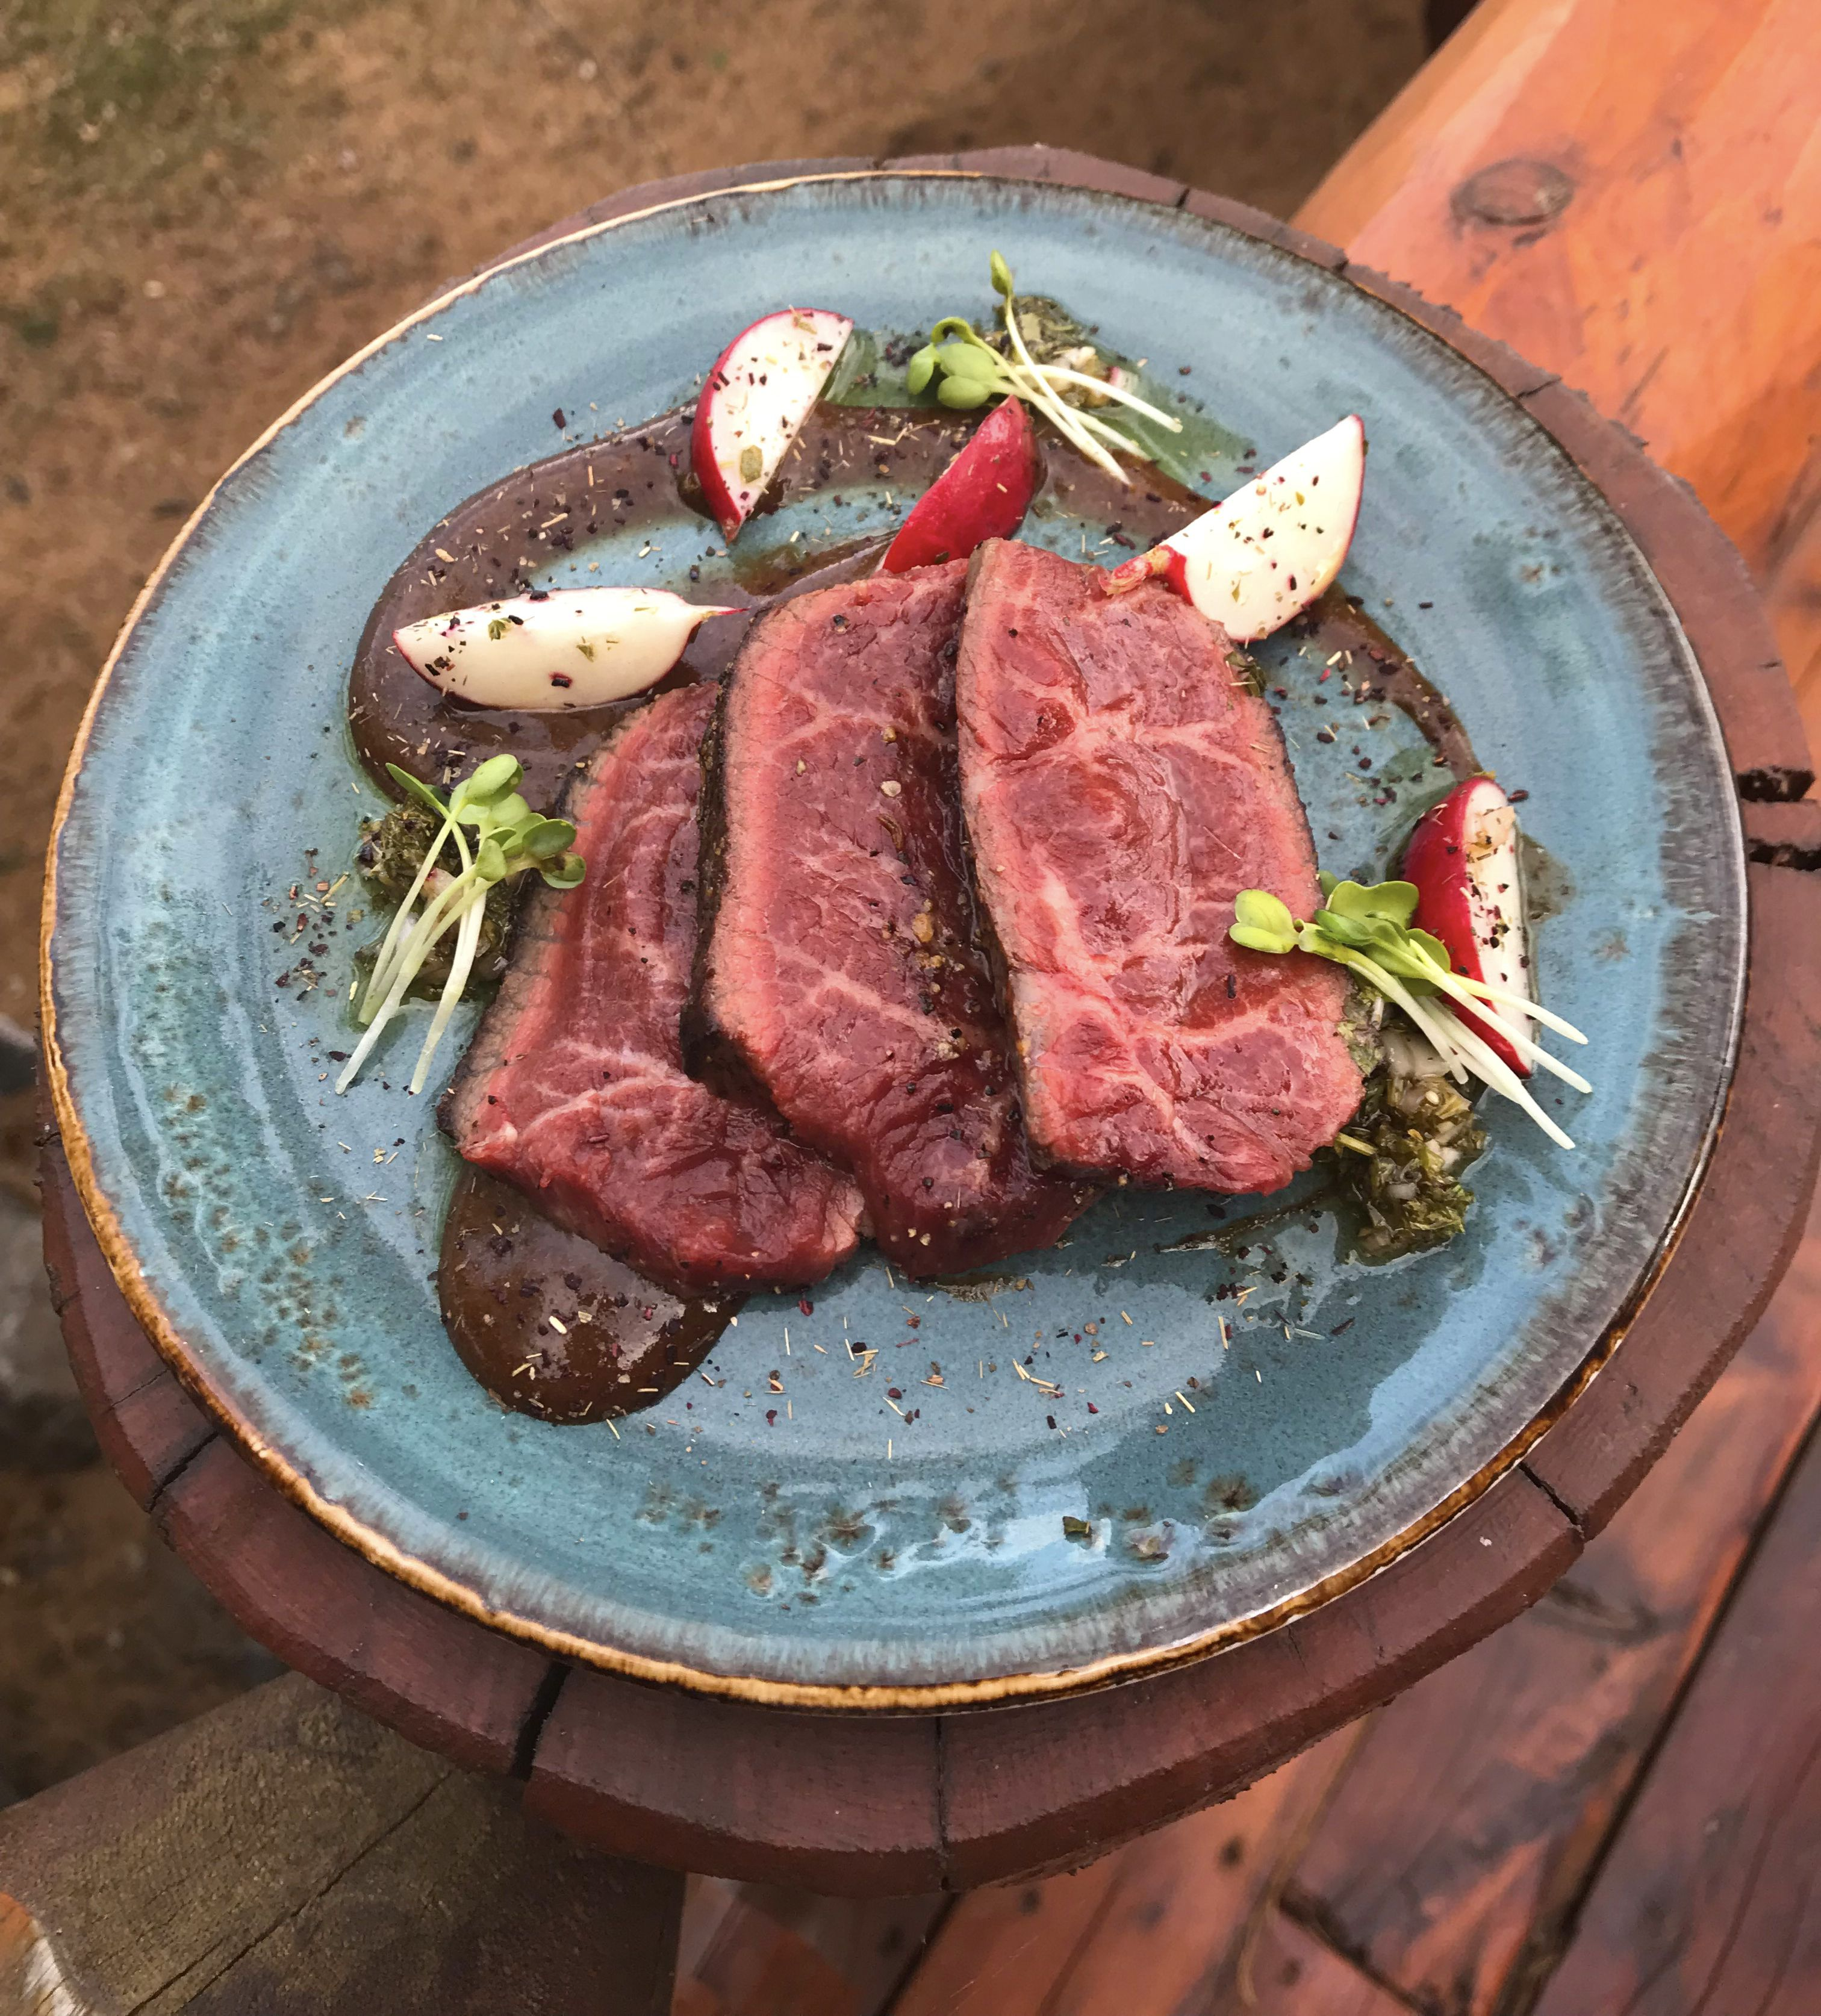 Nebraska Wagyu Beef dish from our Locations Wine Dinner